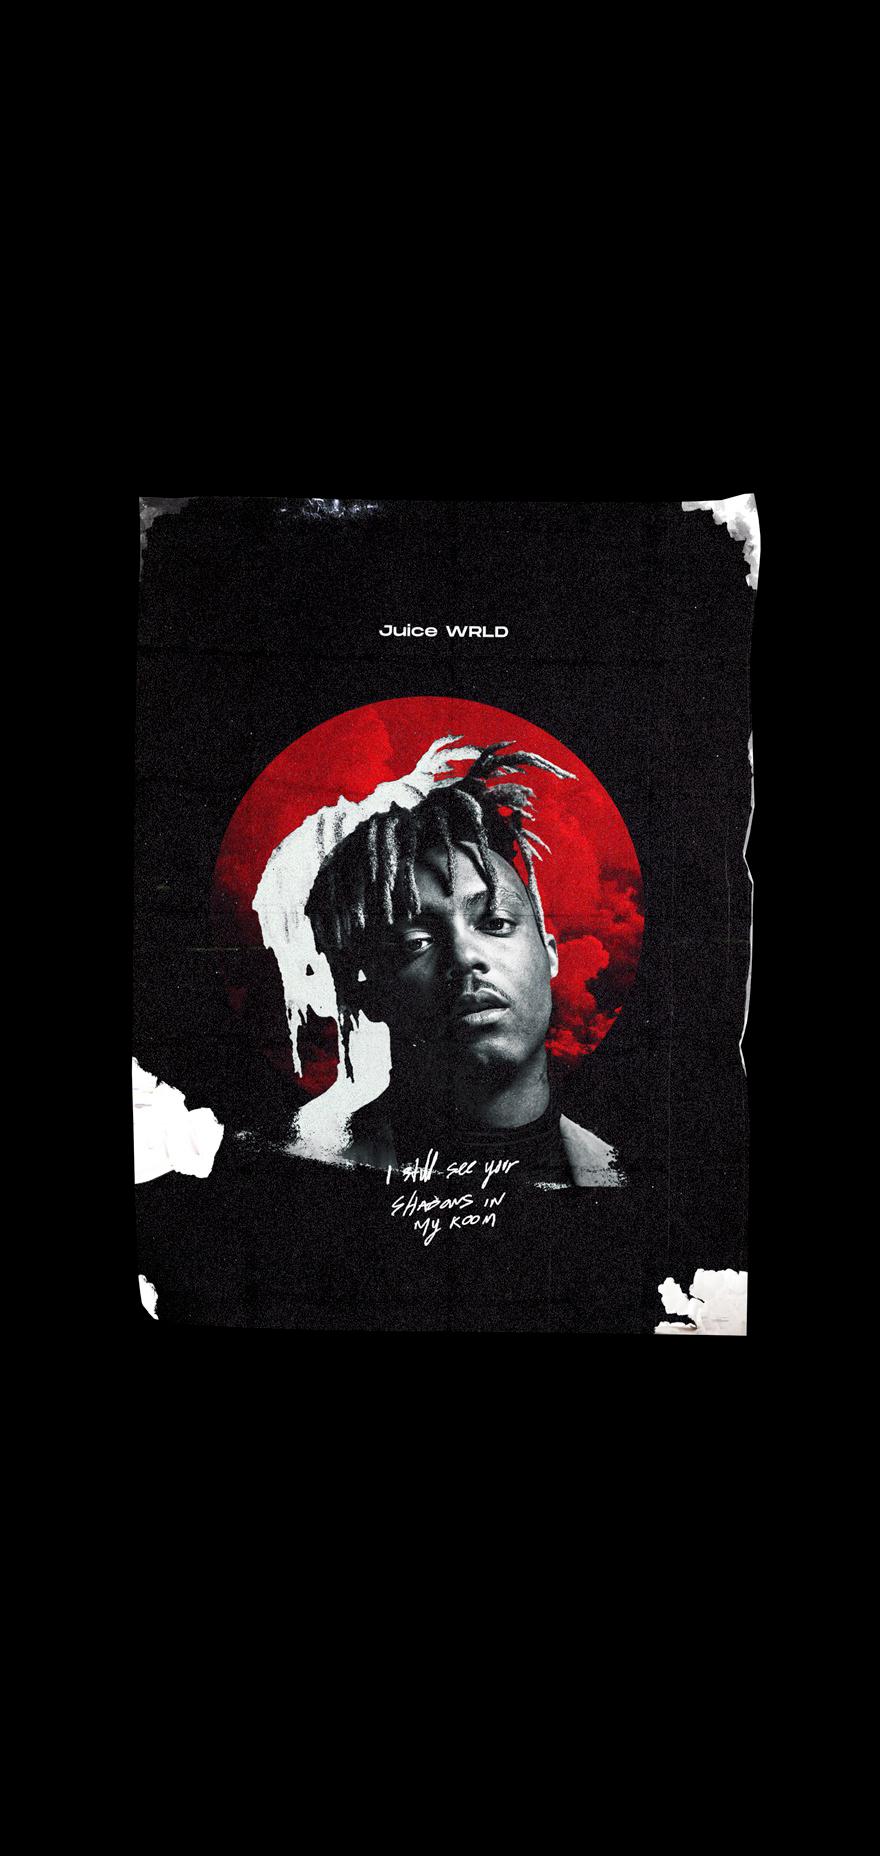 Juice Wrld Wallpaper Heroscreen Cool Wallpapers